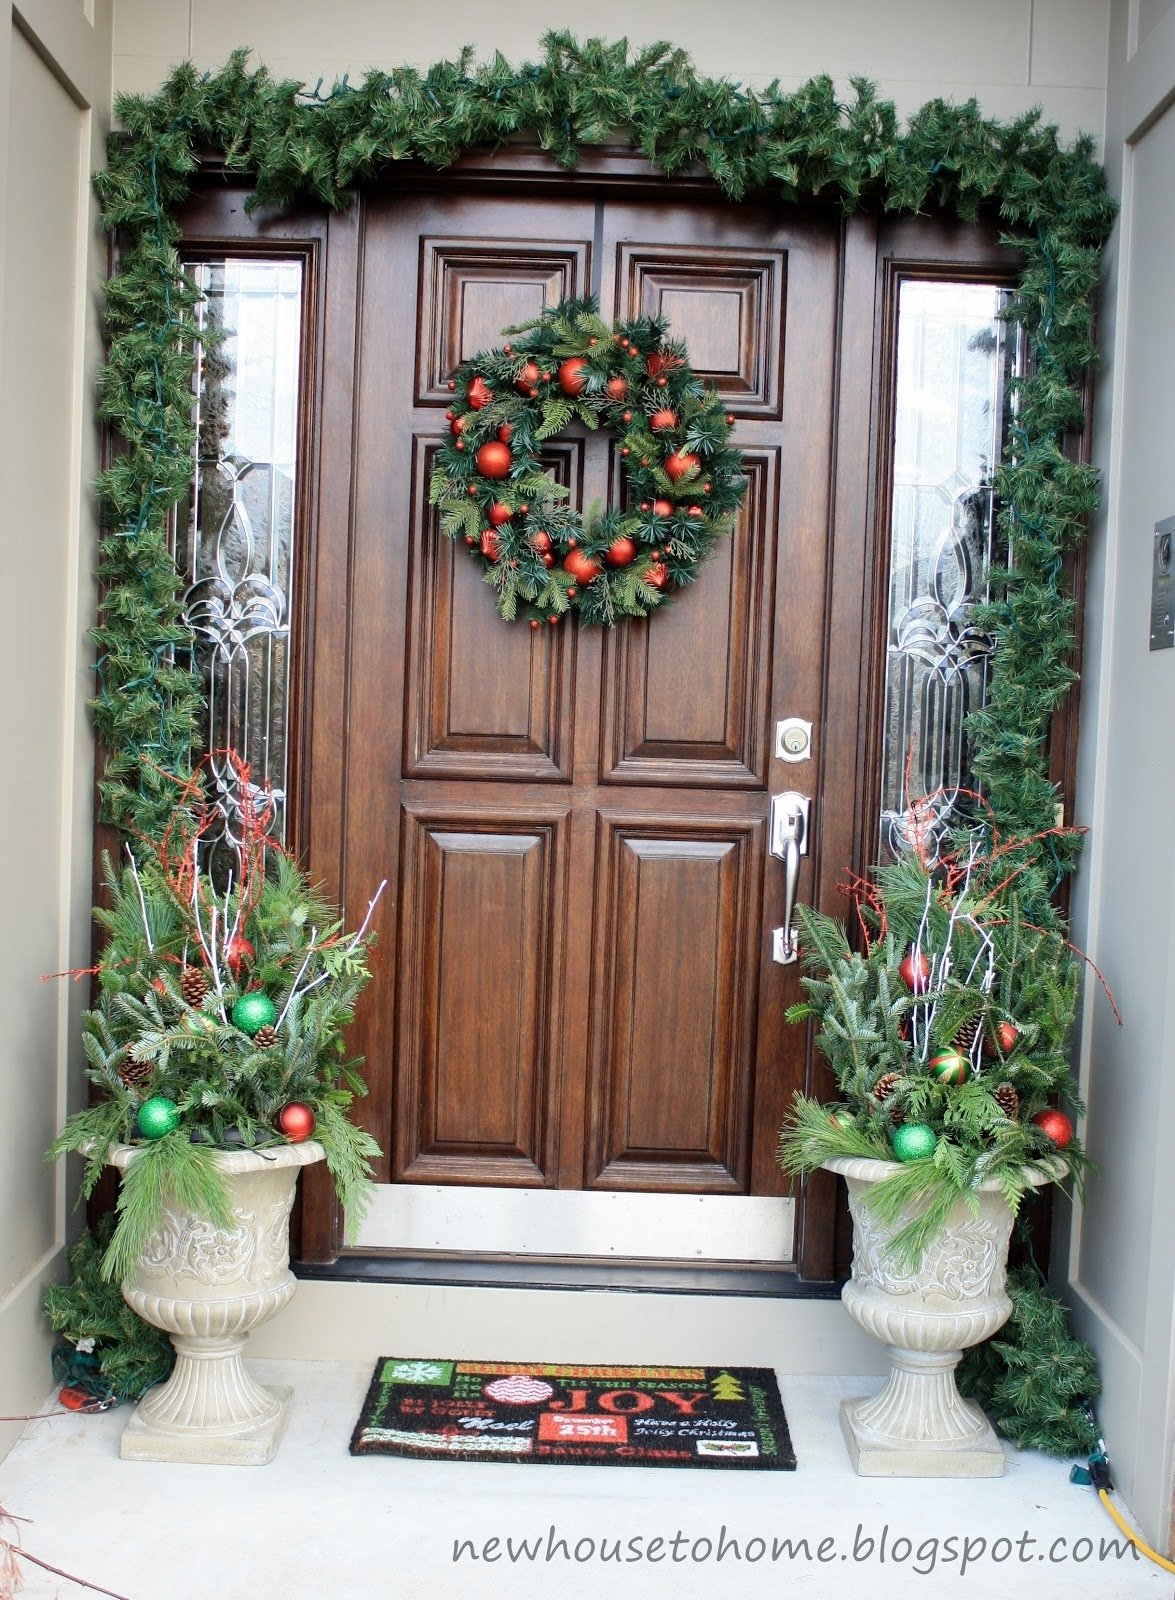 10 Awesome Front Door Christmas Decorating Ideas decorations natural green christmas entrance door decor outdoor 2020